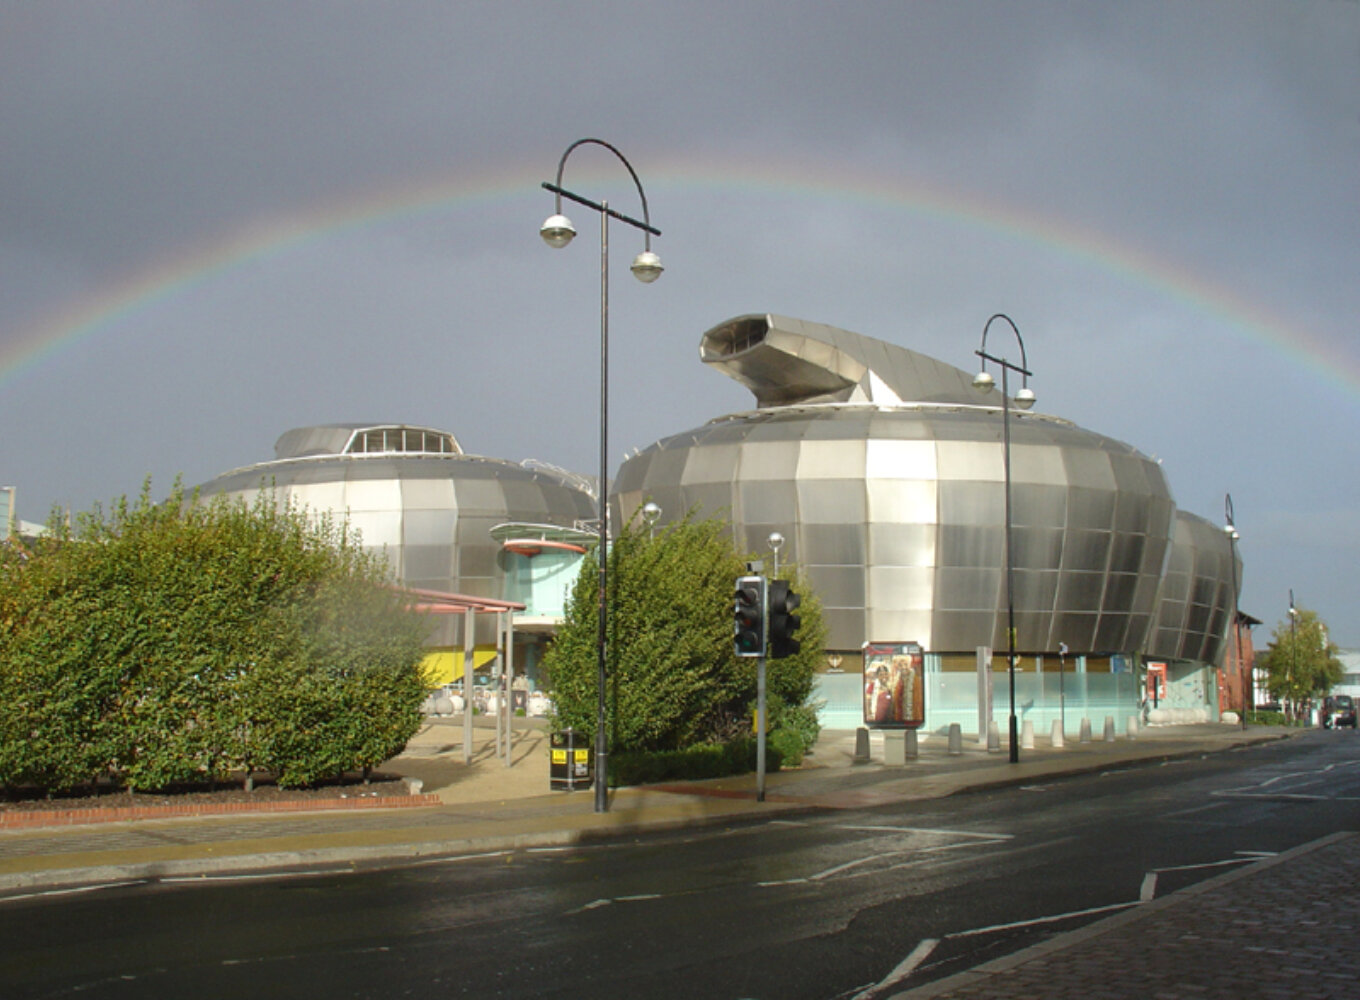 A photograph of the Hubs in Sheffield with a rainbow in the sky